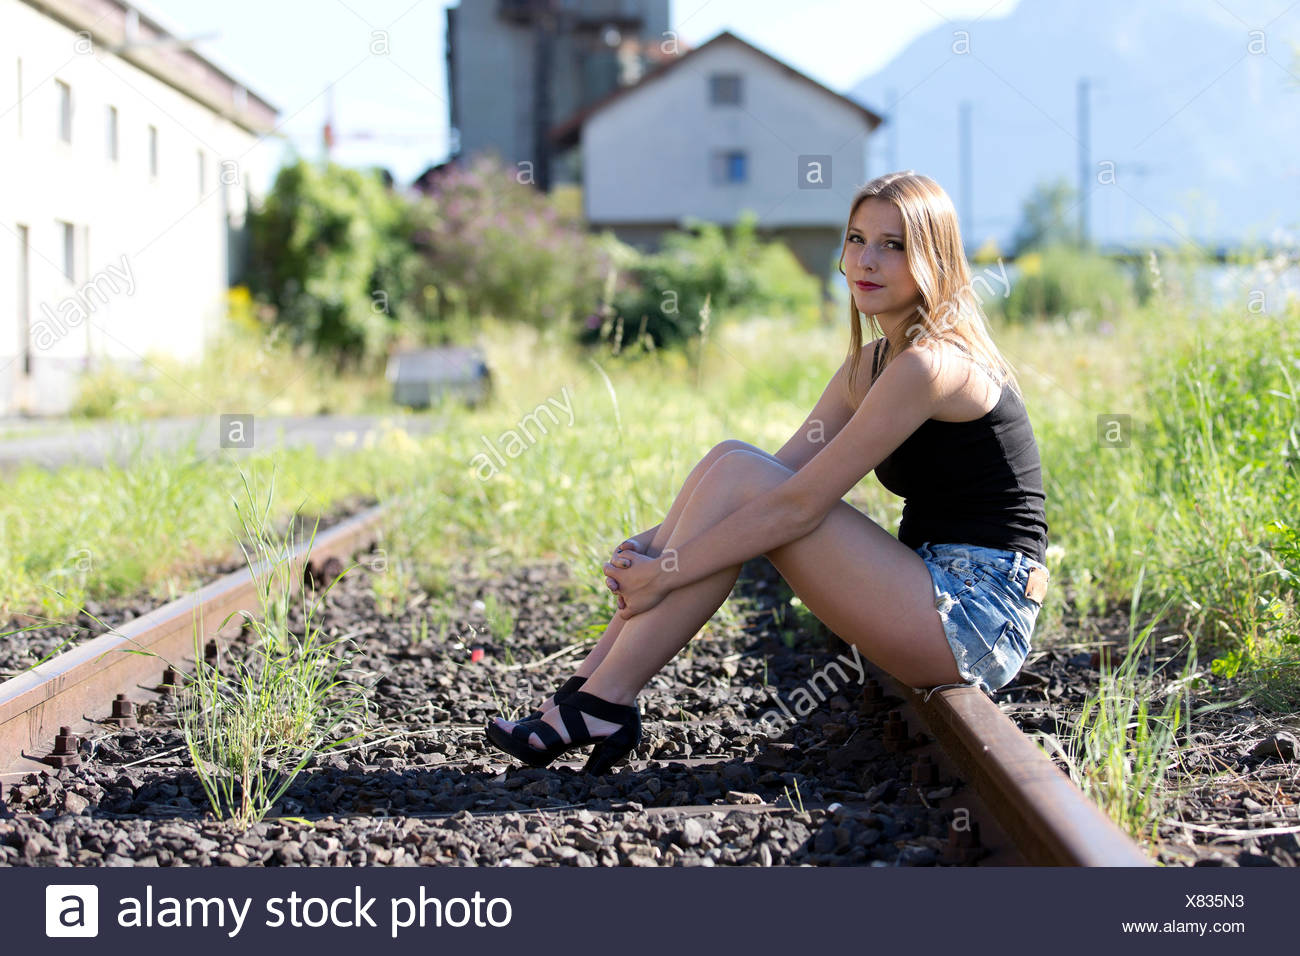 Young woman in a black top, jeans hot pants and high heels posing sitting on railway tracks - Stock Image